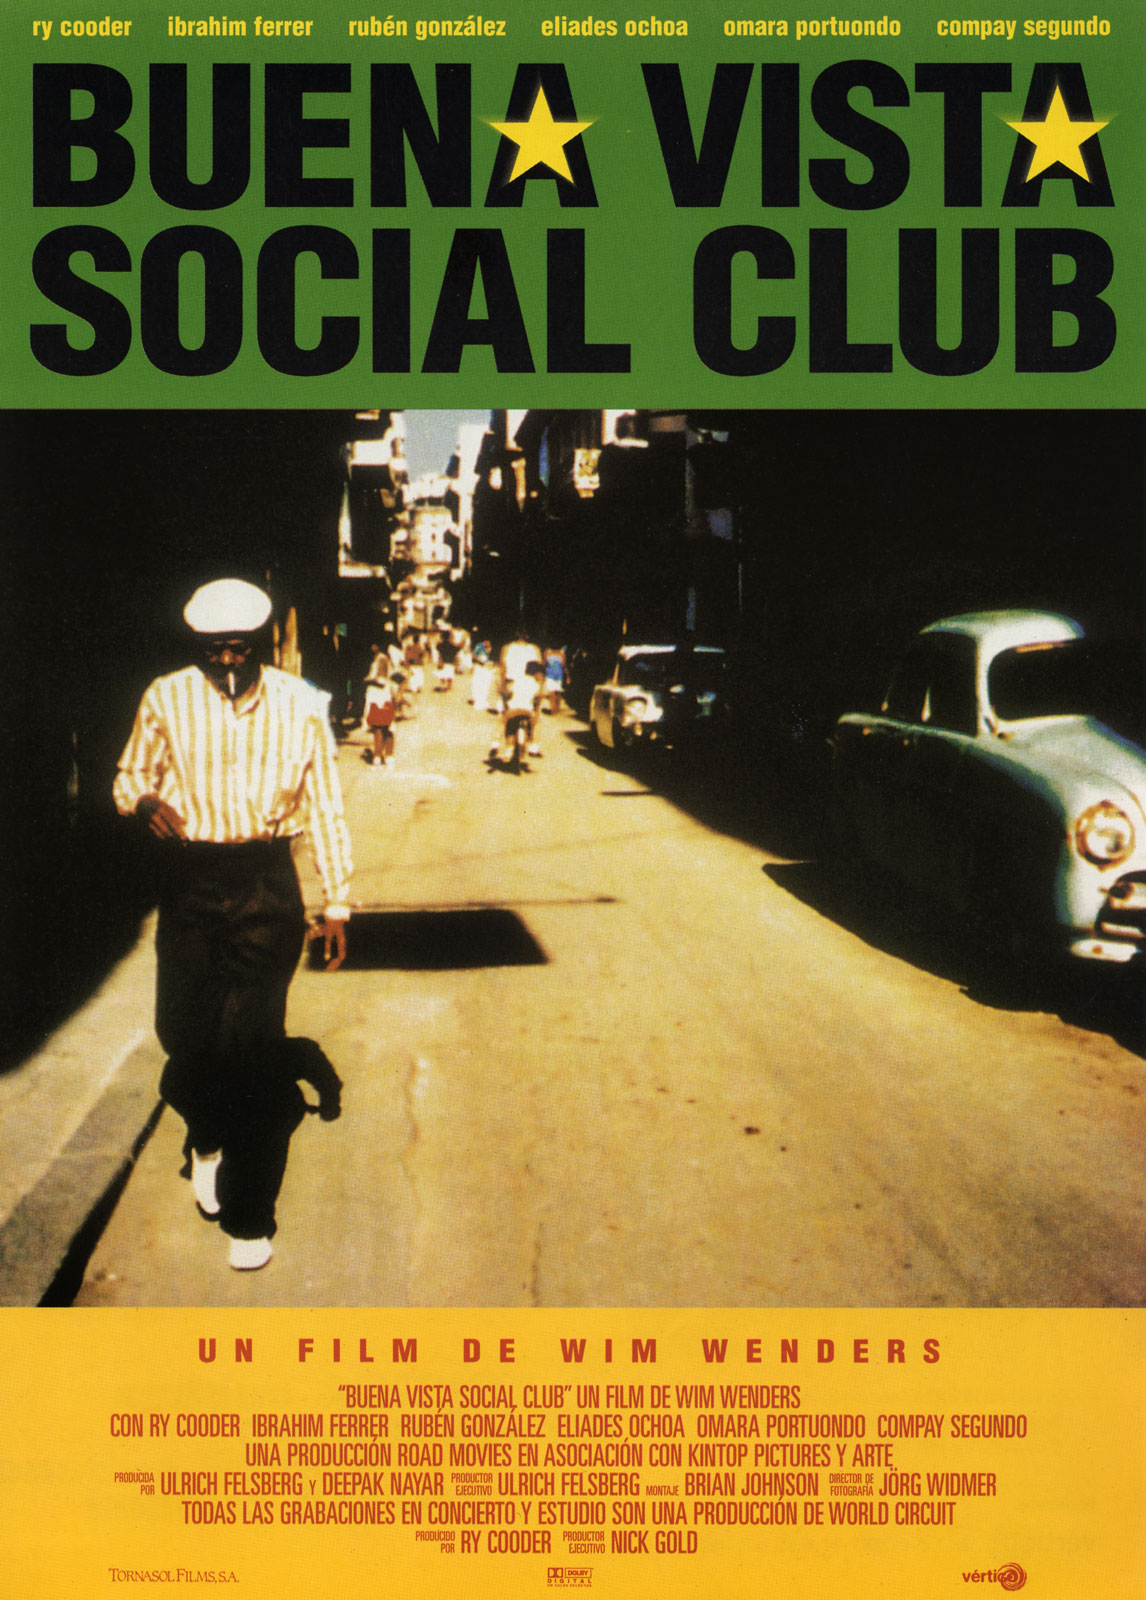 Buena Vista Social Club - Full album